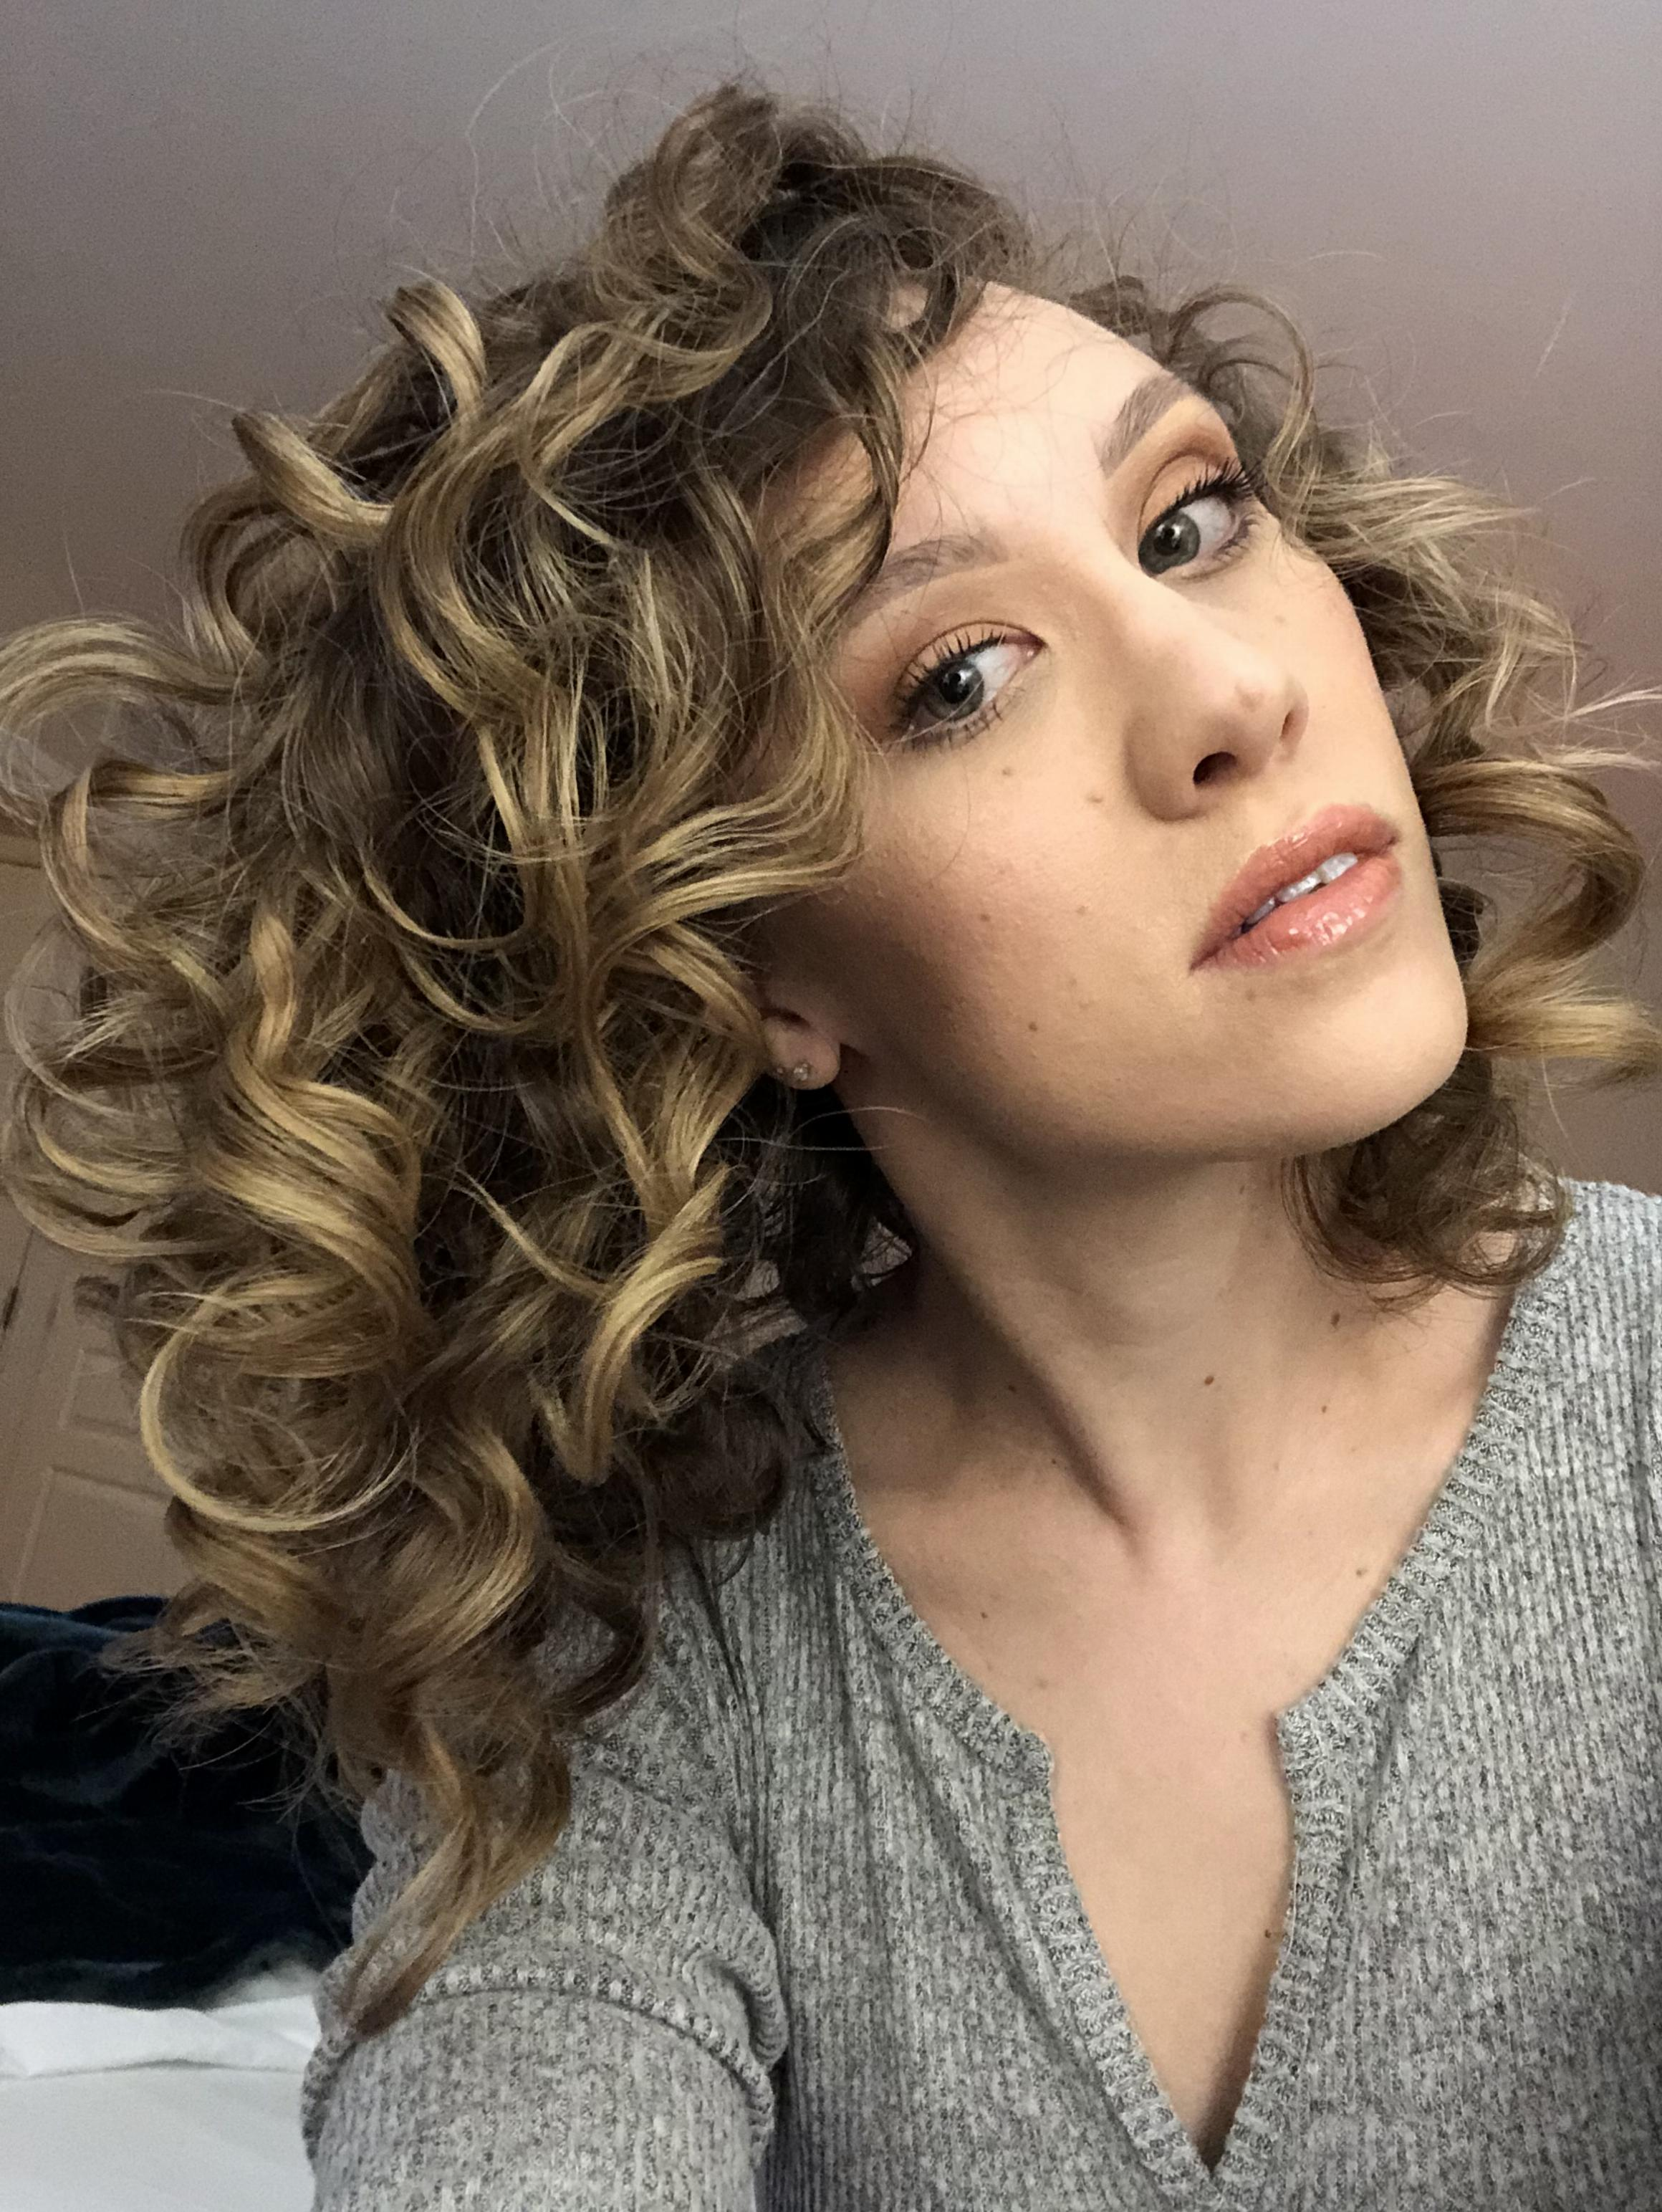 20 Step Plump Method to Dry and Style Unmanageable Curly Hair